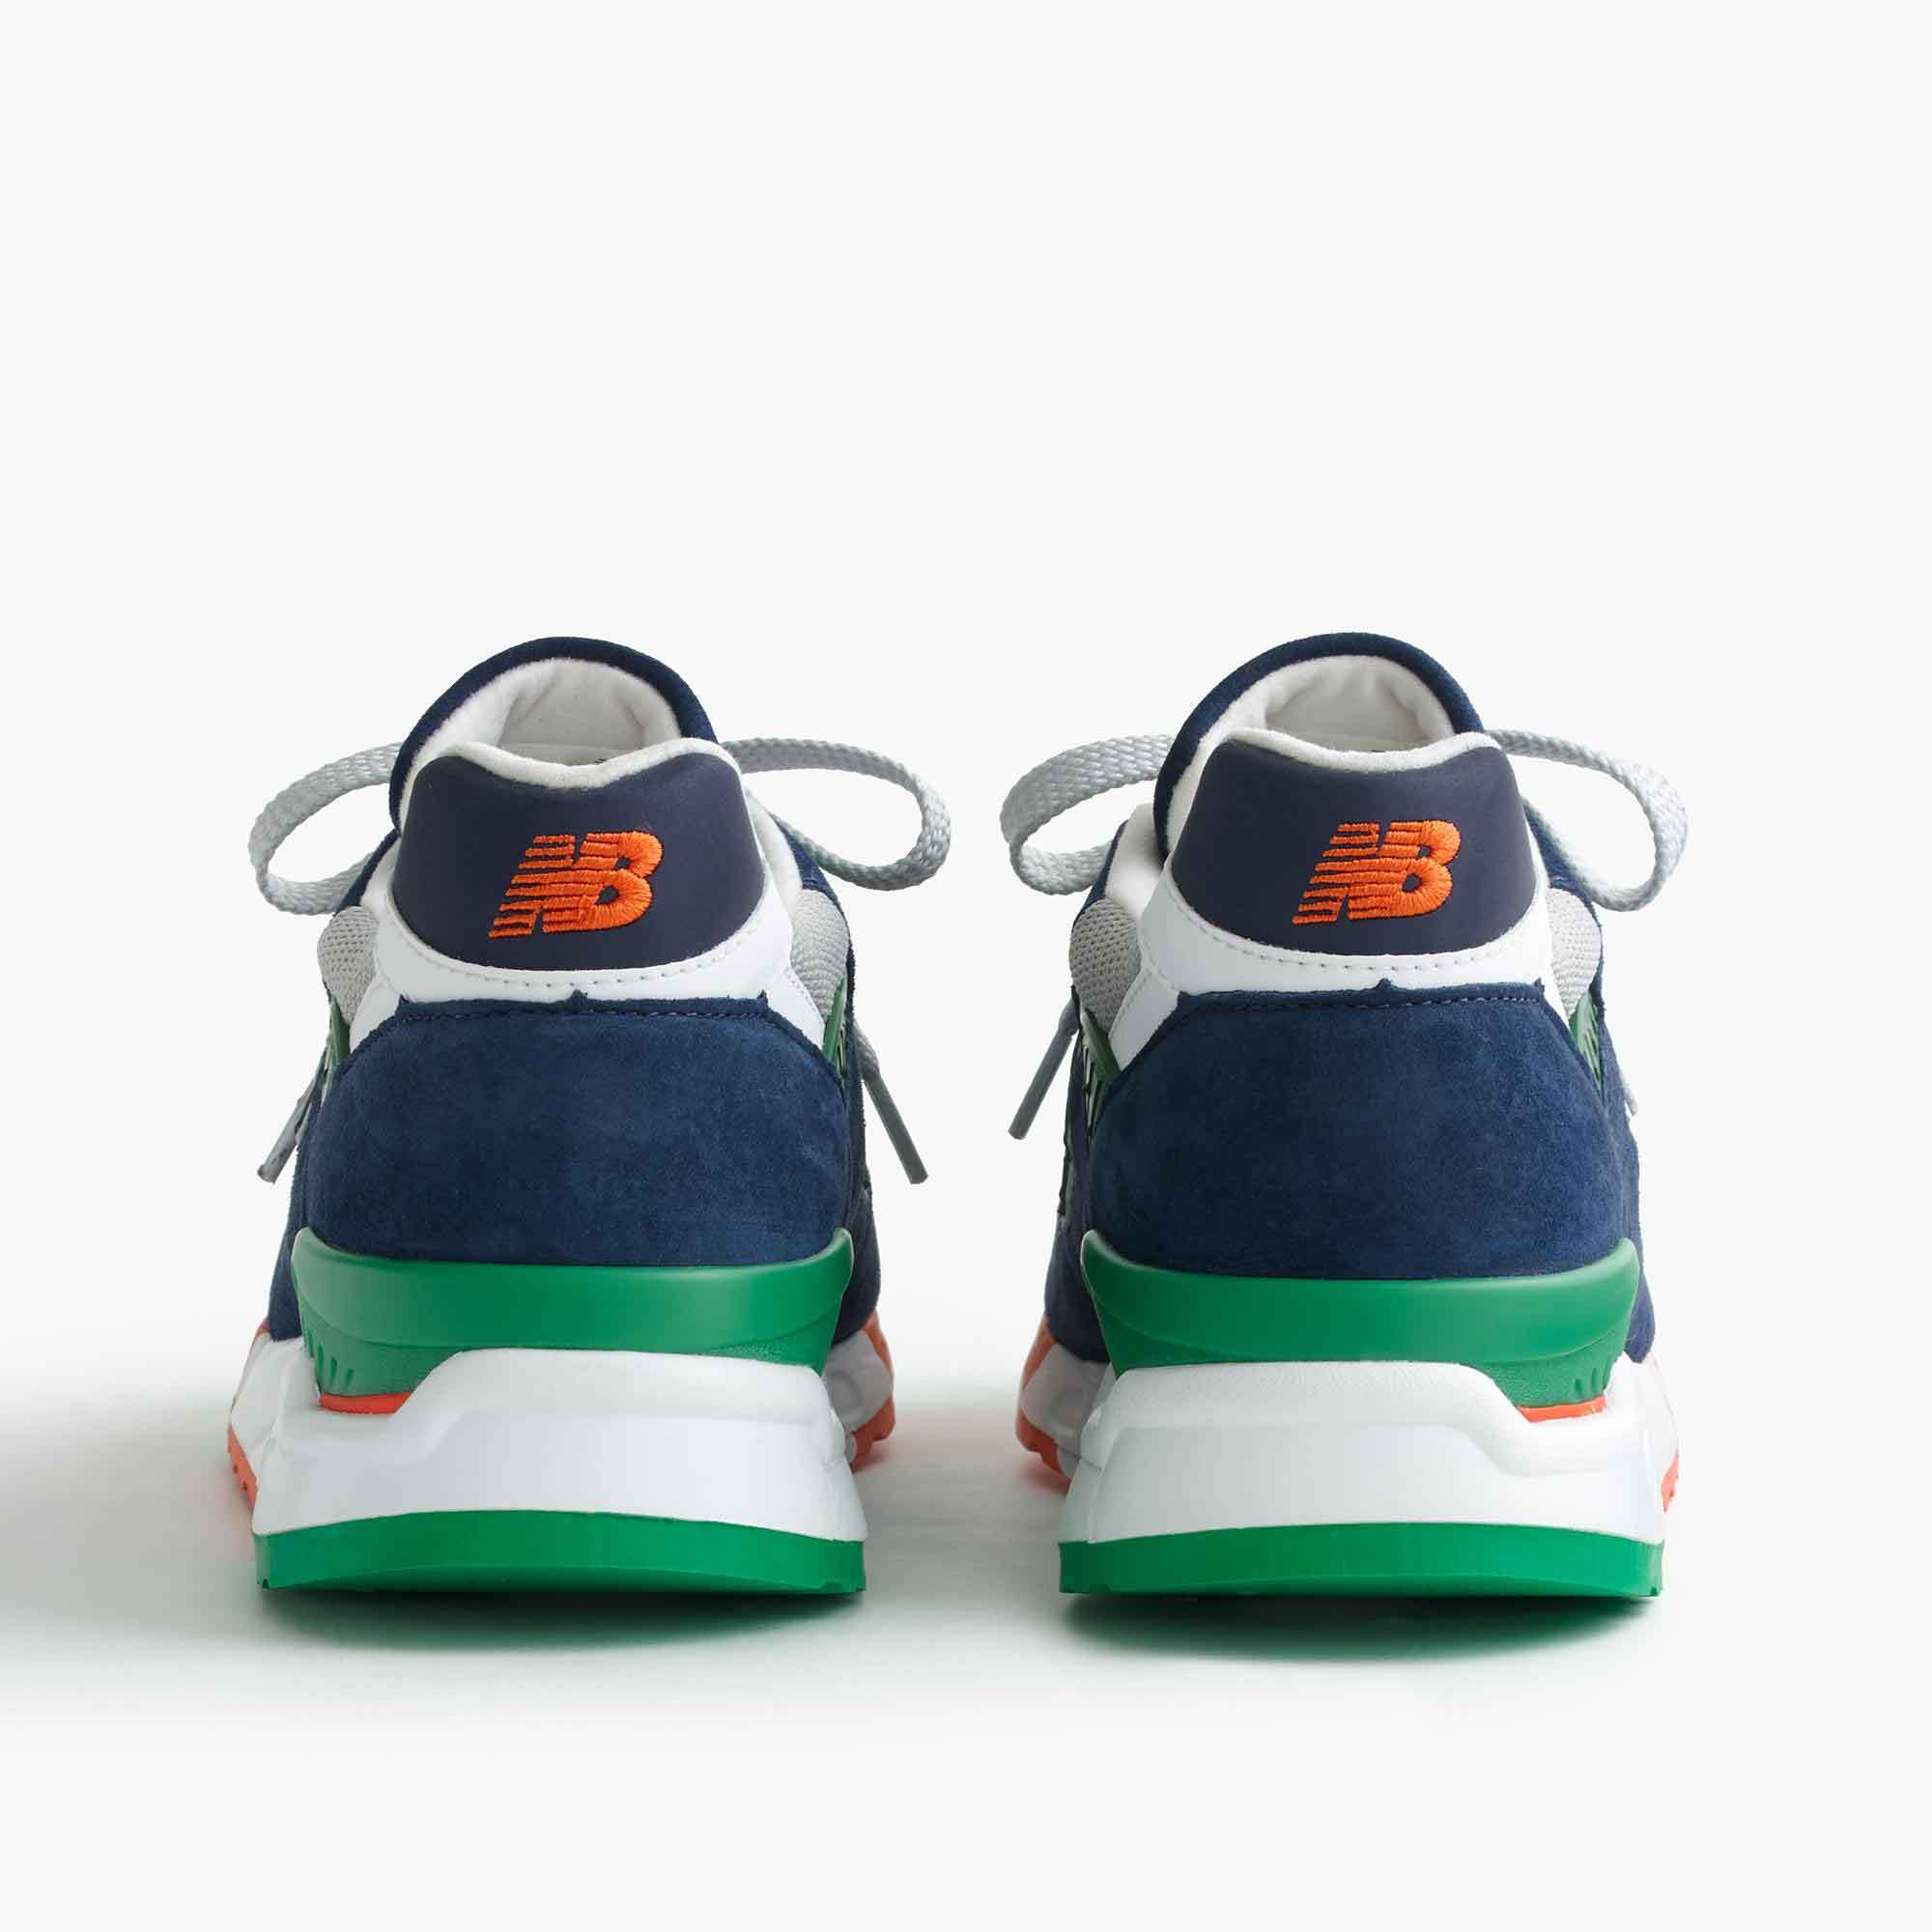 New Balance for J.Crew 998 Toucan sneakers ジェイクルー